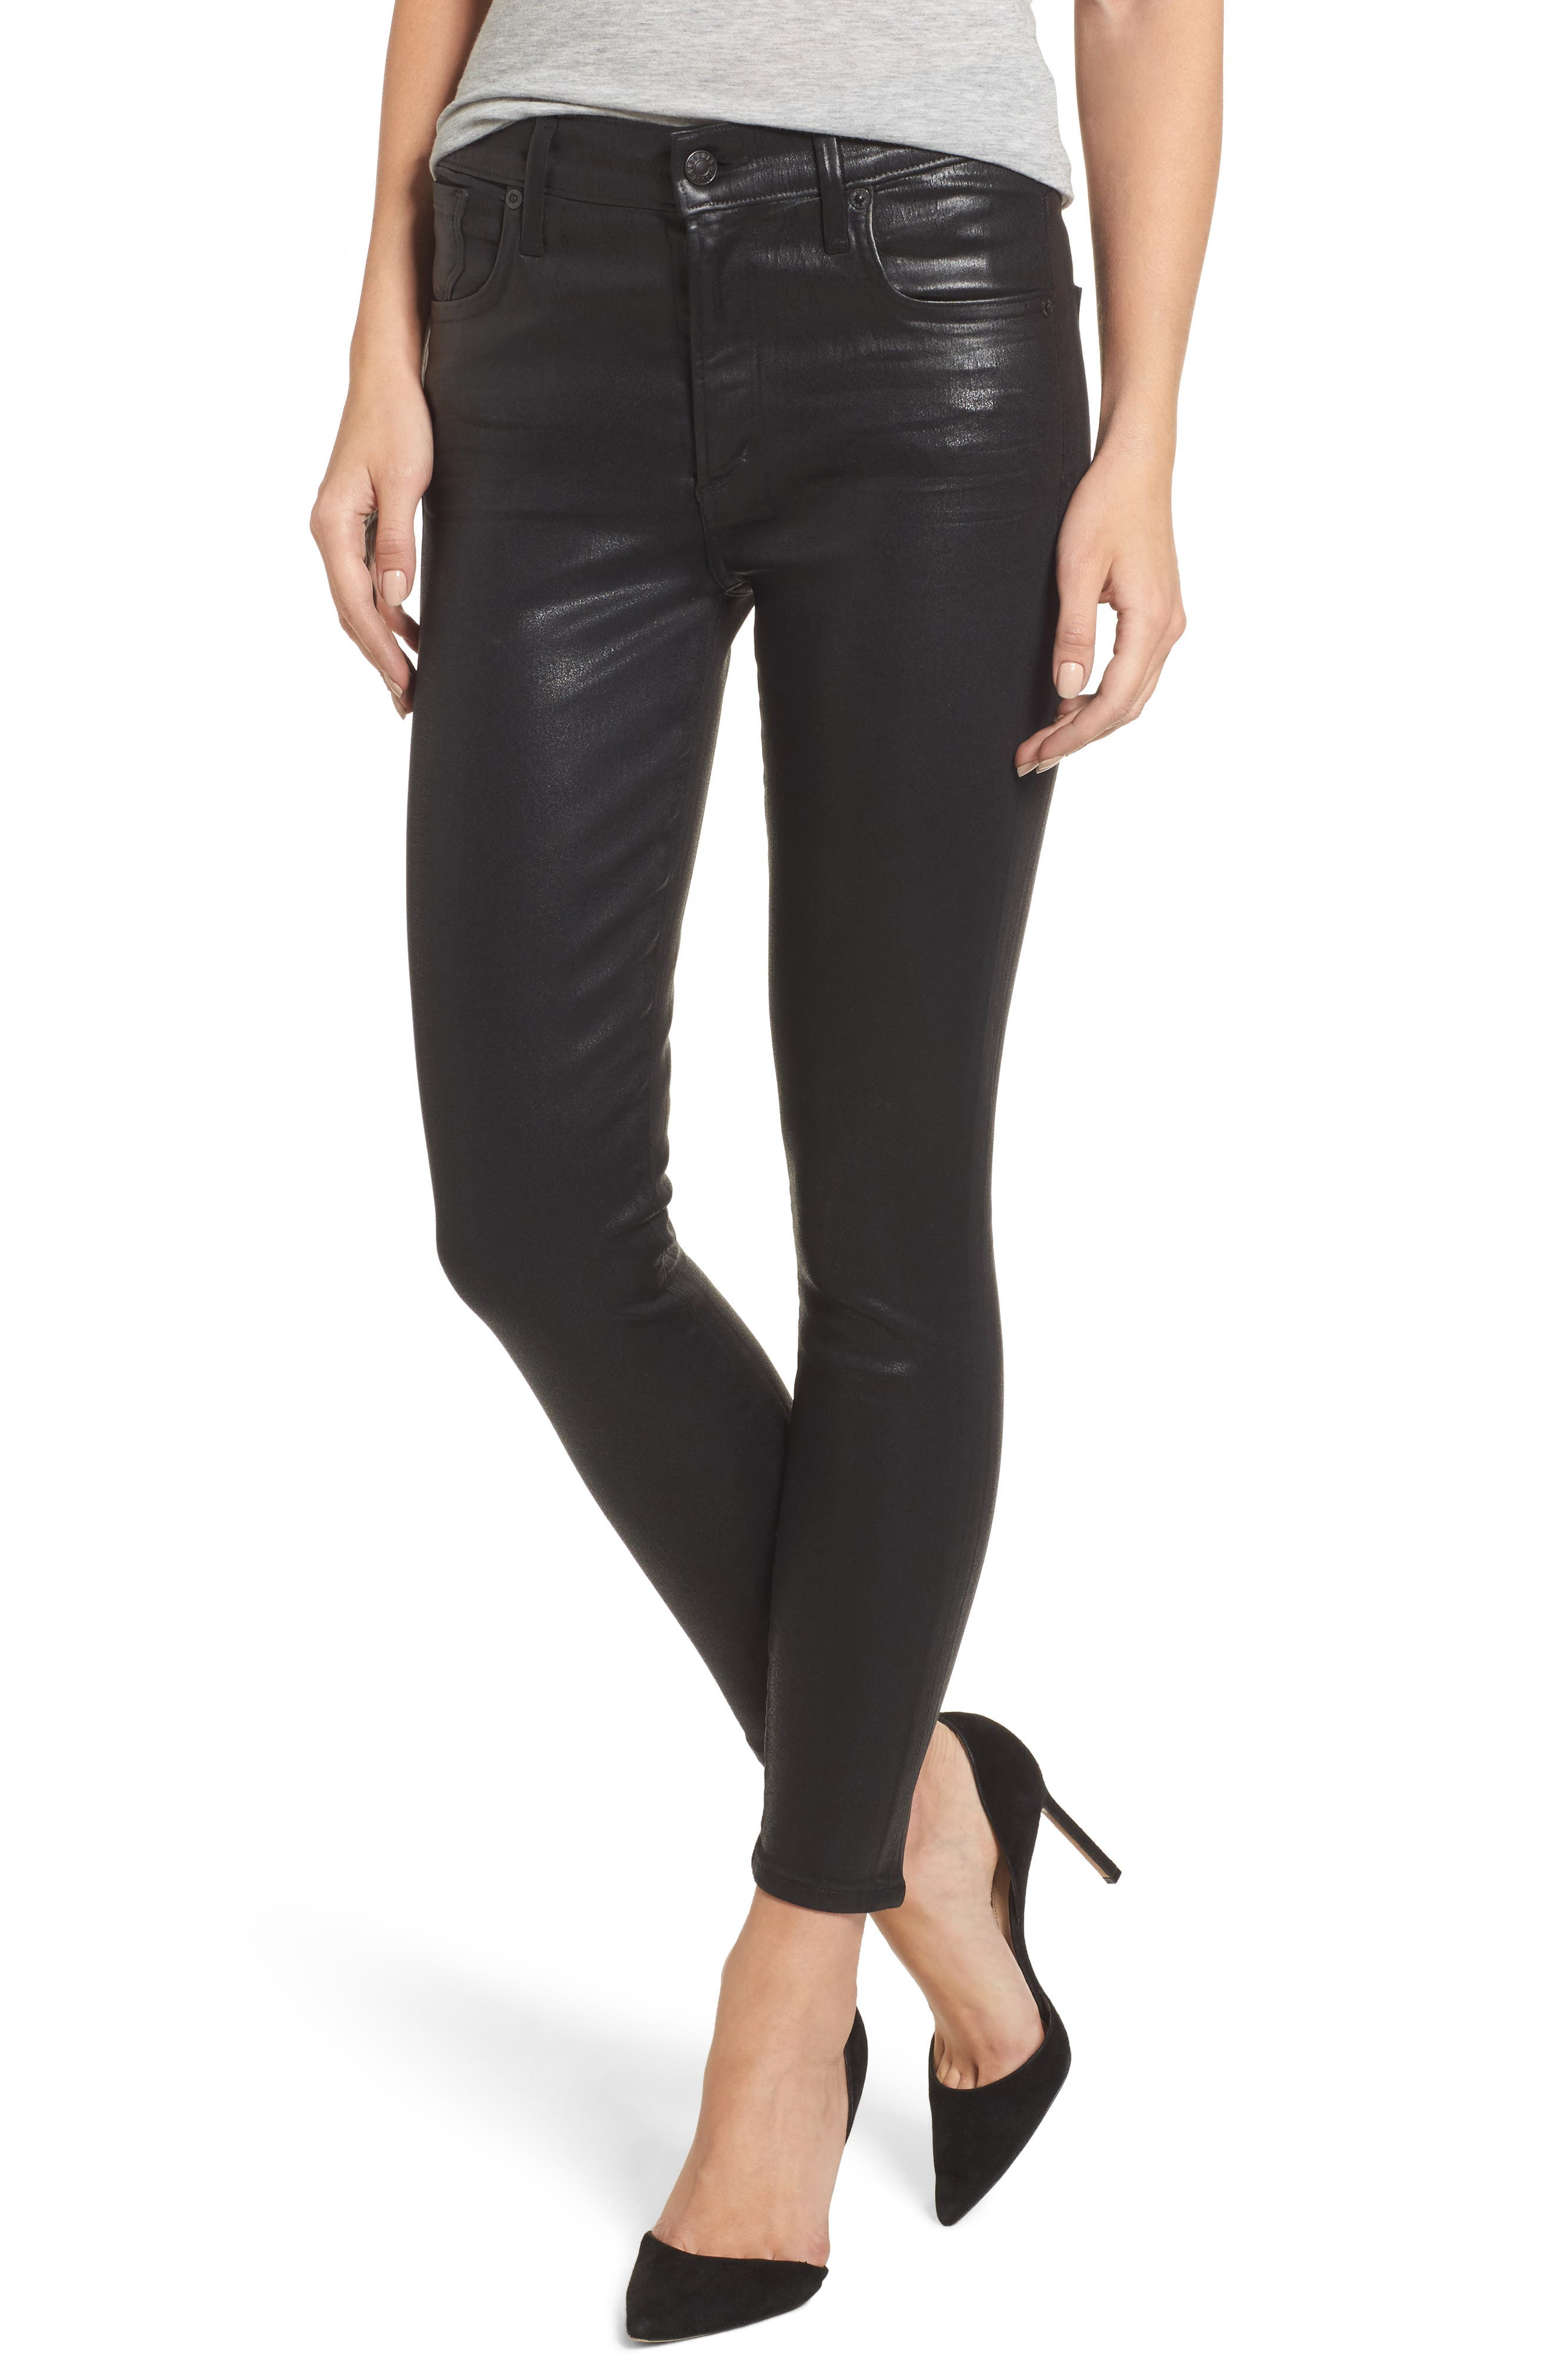 Main Image - AGOLDE Sophie Coated High Waist Crop Skinny Jeans (Black Leatherette)